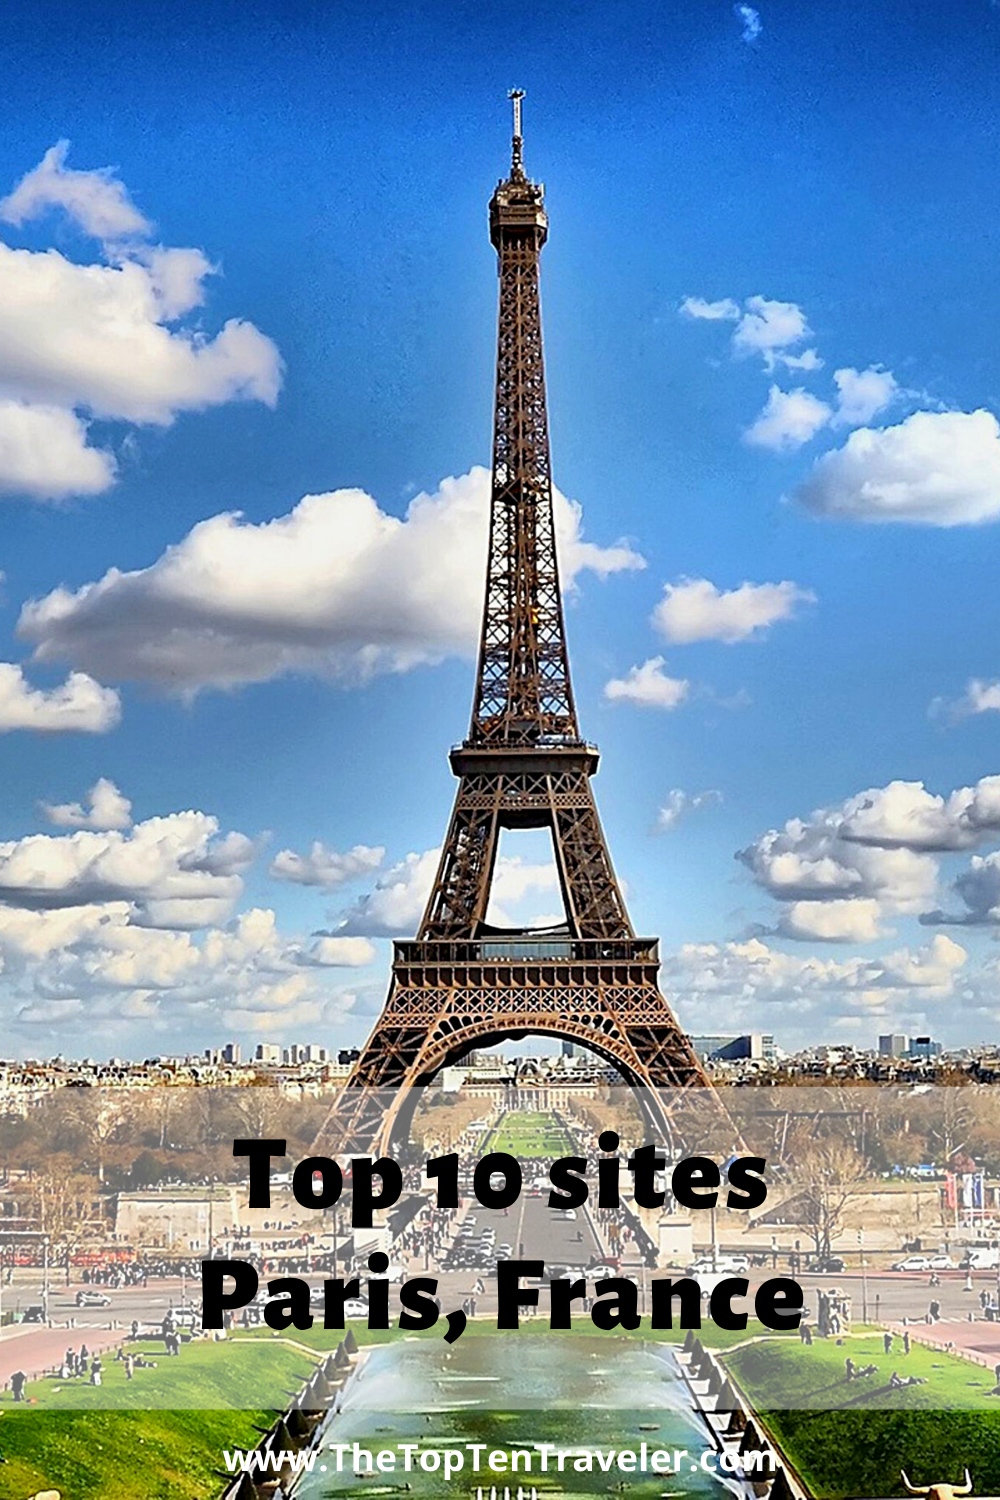 top sites in paris, top sites to see in paris, paris sightseeing, what to do in paris, what to do in paris france, what to do in paris summer, what to do in paris in winter, paris travel, paris travel tips, paris travel guide, paris travel places, paris sites to see, paris historical sites, top sites in paris, best sites in paris, sites in paris, #Paris #France #TheTopTenTraveler